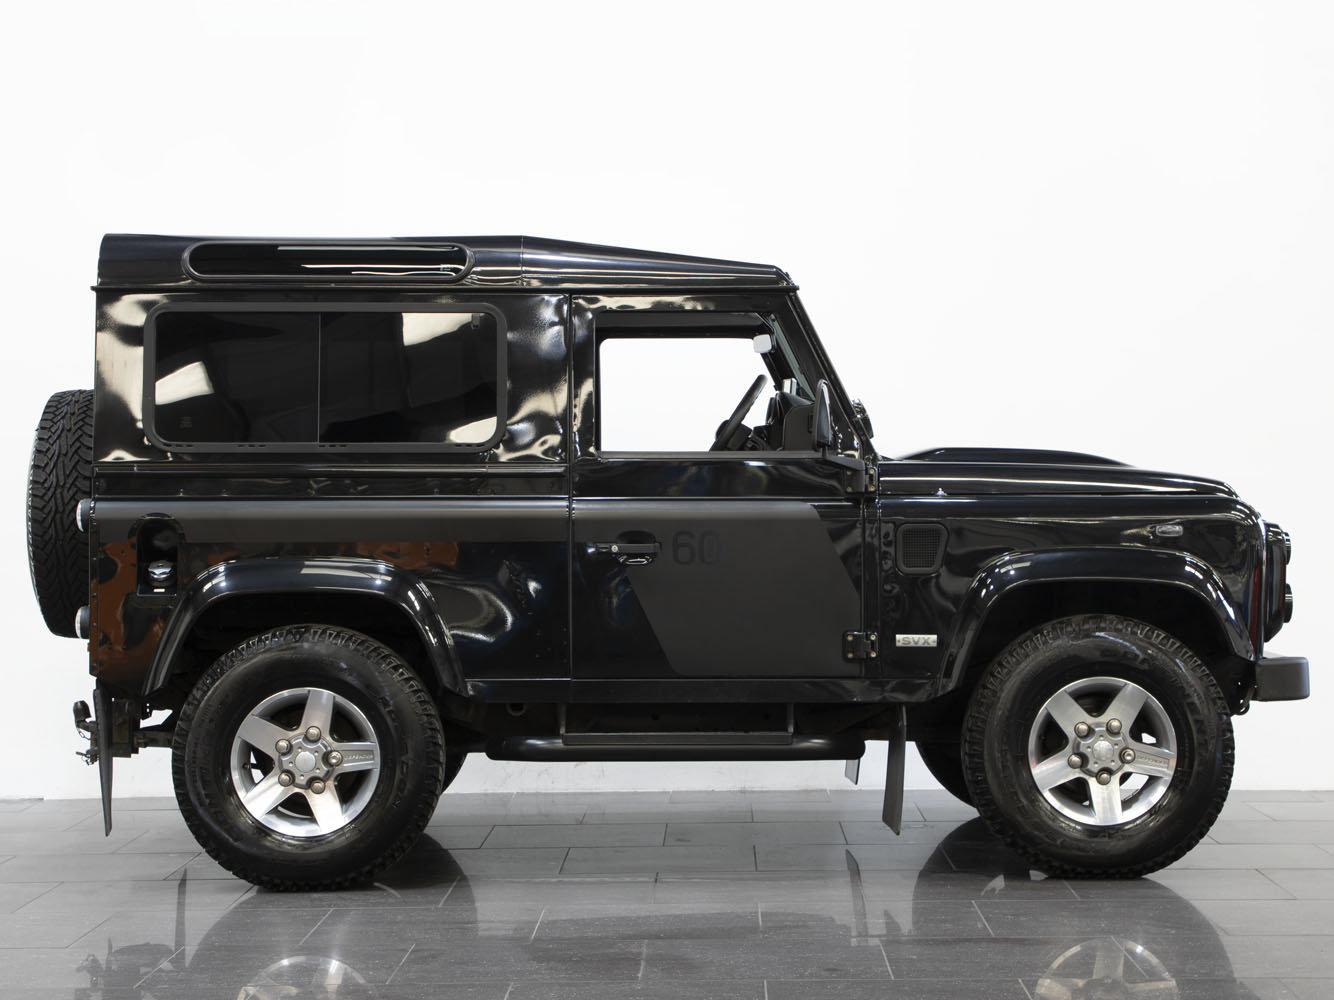 2008 08 58 LAND ROVER DEFENDER 90 SVX 60TH ANNIVERSARY EDITION For Sale (picture 2 of 6)